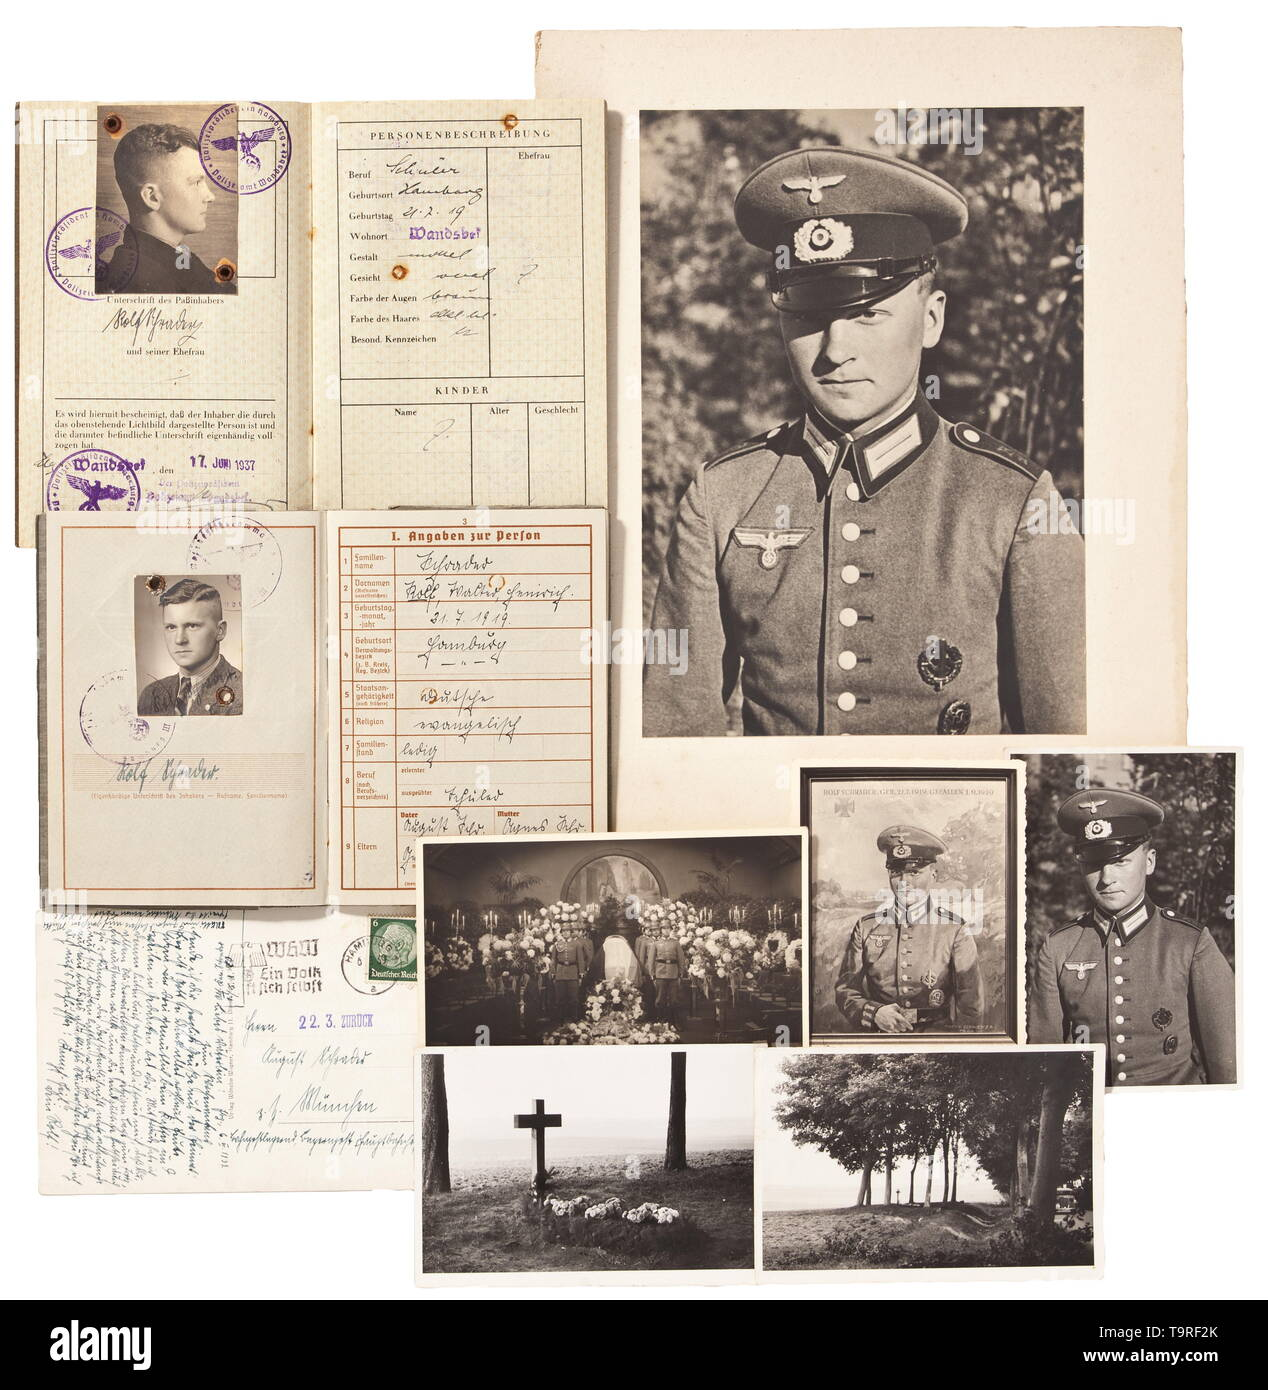 Killed in action 1 Sept. 1939 - The first victim of World War II - an estate of Kanonier Schrader In 1939, propaganda claimed the gunner was the first German soldier to be killed in World War II. Wehrpass (military service book) with photograph and entries, specifically 'Entlassen 1.9.1939 - Gefallen vor Konitz' (tr. 'Discharged 1 Sept. 1939 - KIA at Konitz'). Inserted is Schrader's Reich Labour Service certificate, also his passport. Furthermore, a large portrait in oil (61 x 80 cm), Schrader's dates of birth and death marked at the top, rolled up (some spalling), signed o, Editorial-Use-Only - Stock Image